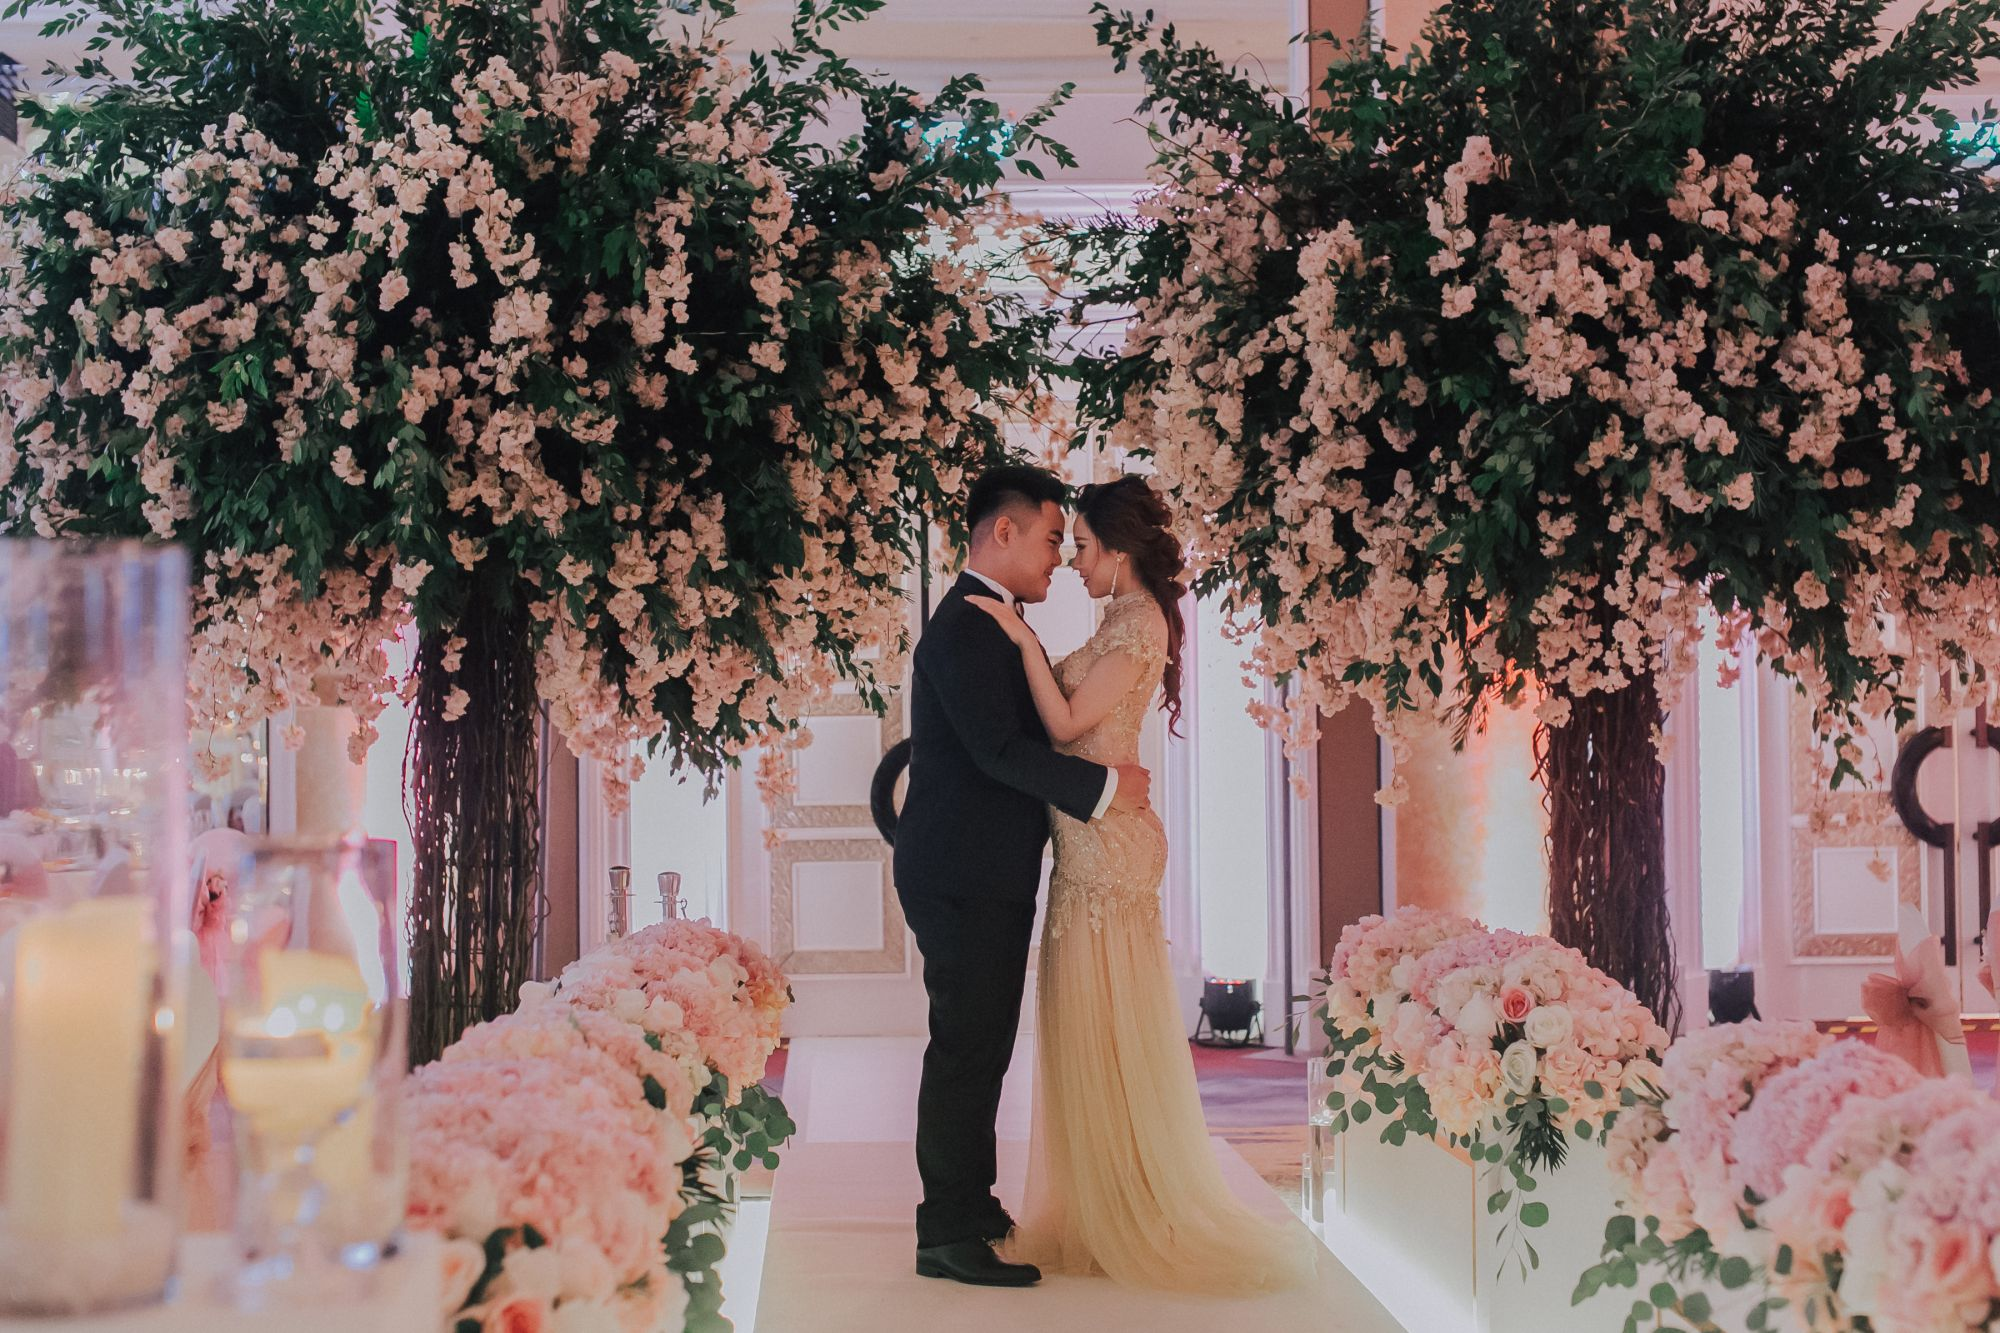 Andrew Tan and Melisa Lee at their fairytale wedding.